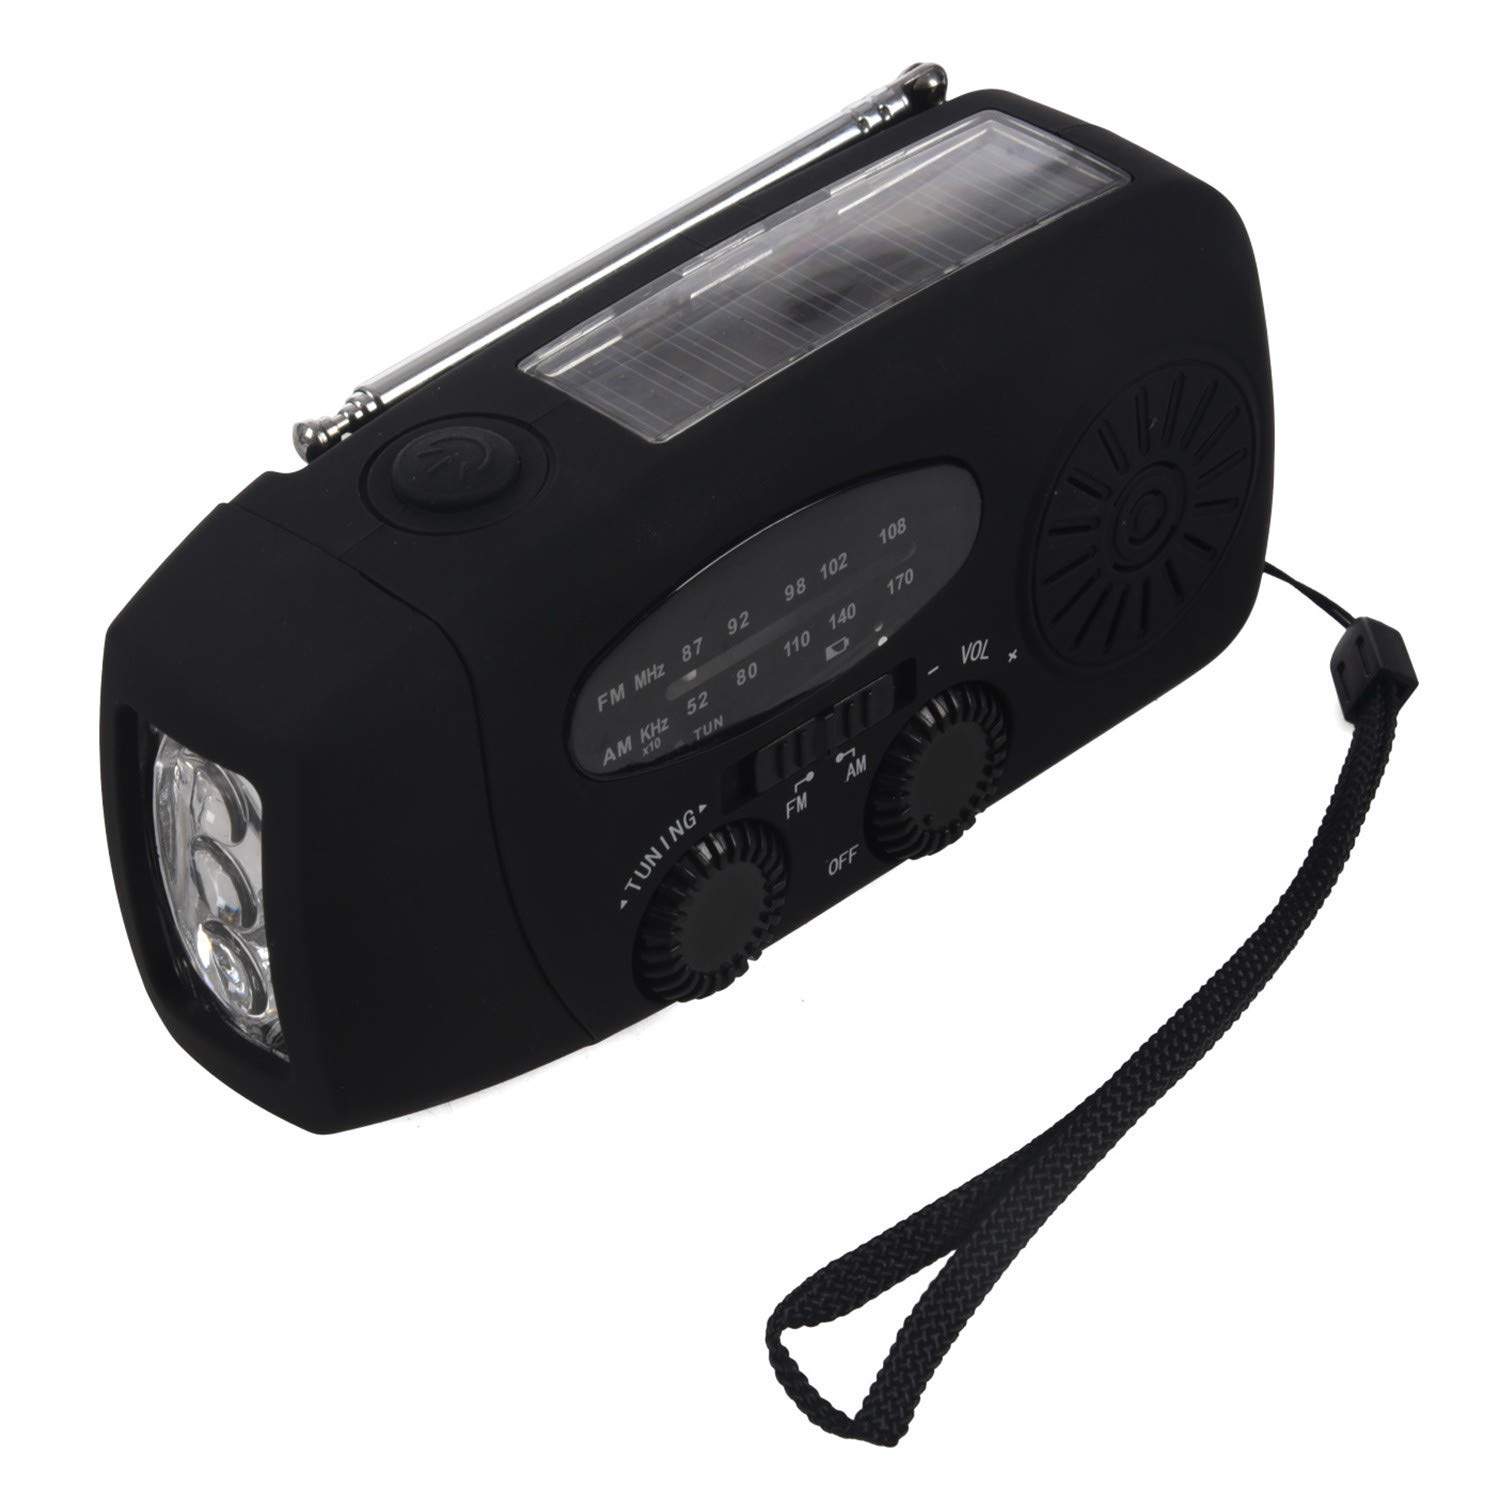 SODIAL(R) Waterproof Portable Hand crank Solar Radio AM / FM 3 LED Flashlight Phone Charger black